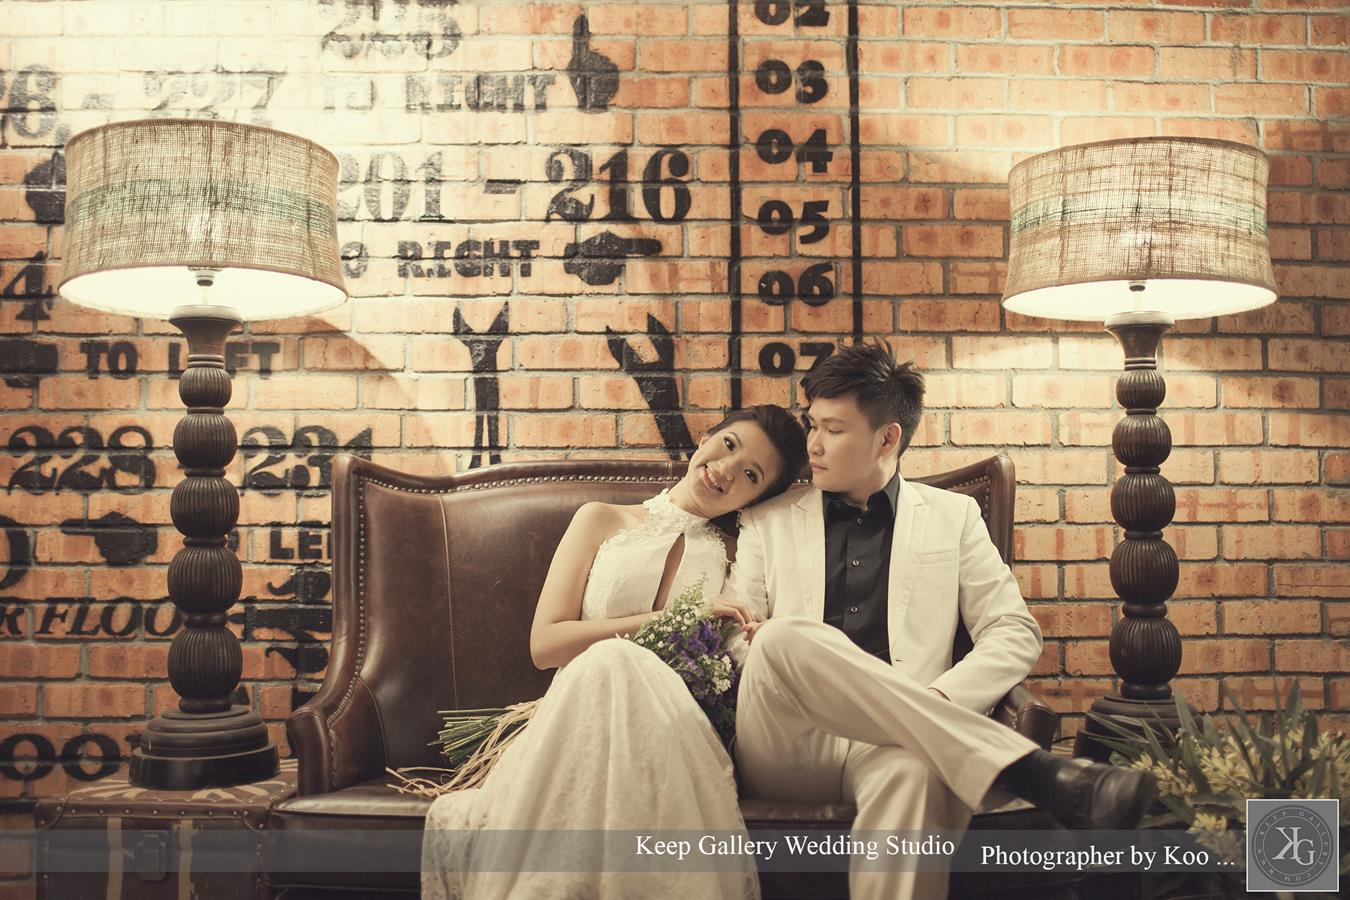 Thanks For Coming Back To This Blog And Look Out More Hotel Pre Wedding Photo Shoot Venues